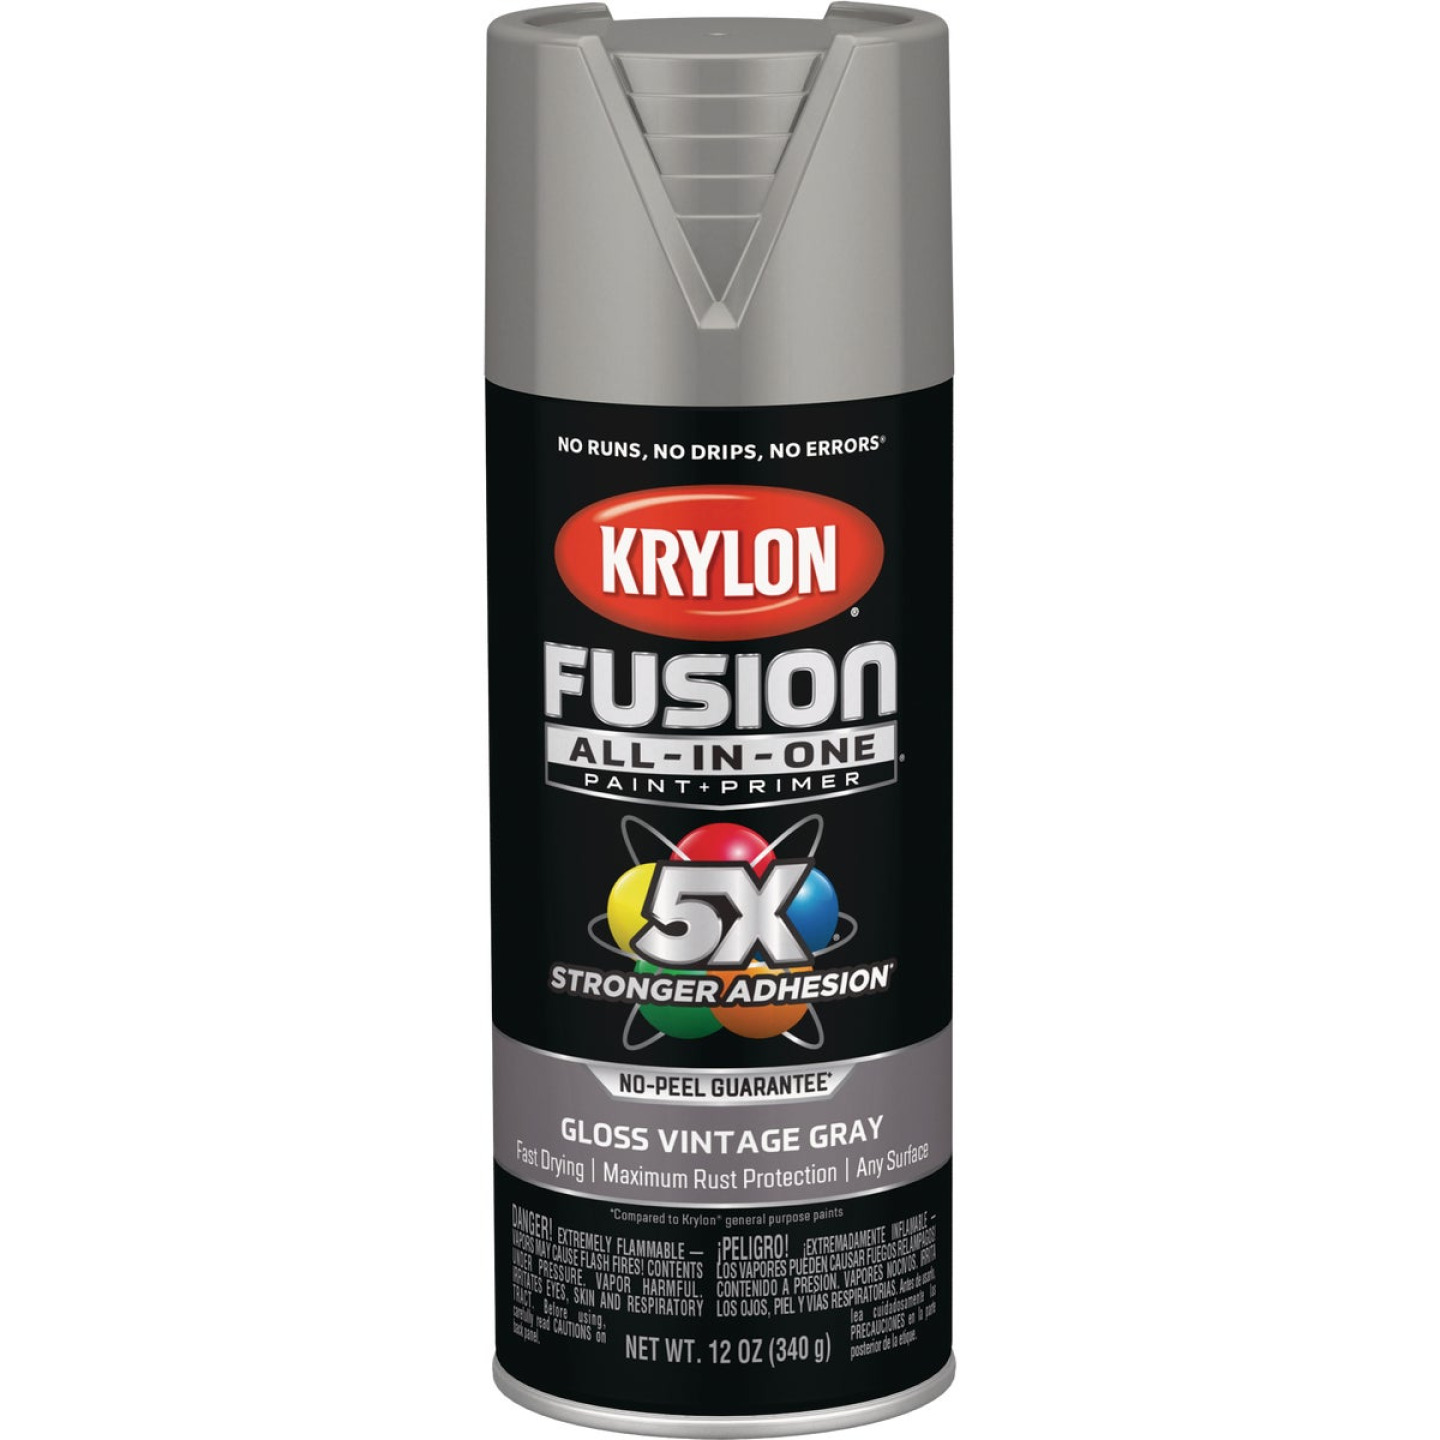 Krylon Fusion All-In-One Gloss Spray Paint & Primer, Vintage Gray Image 1